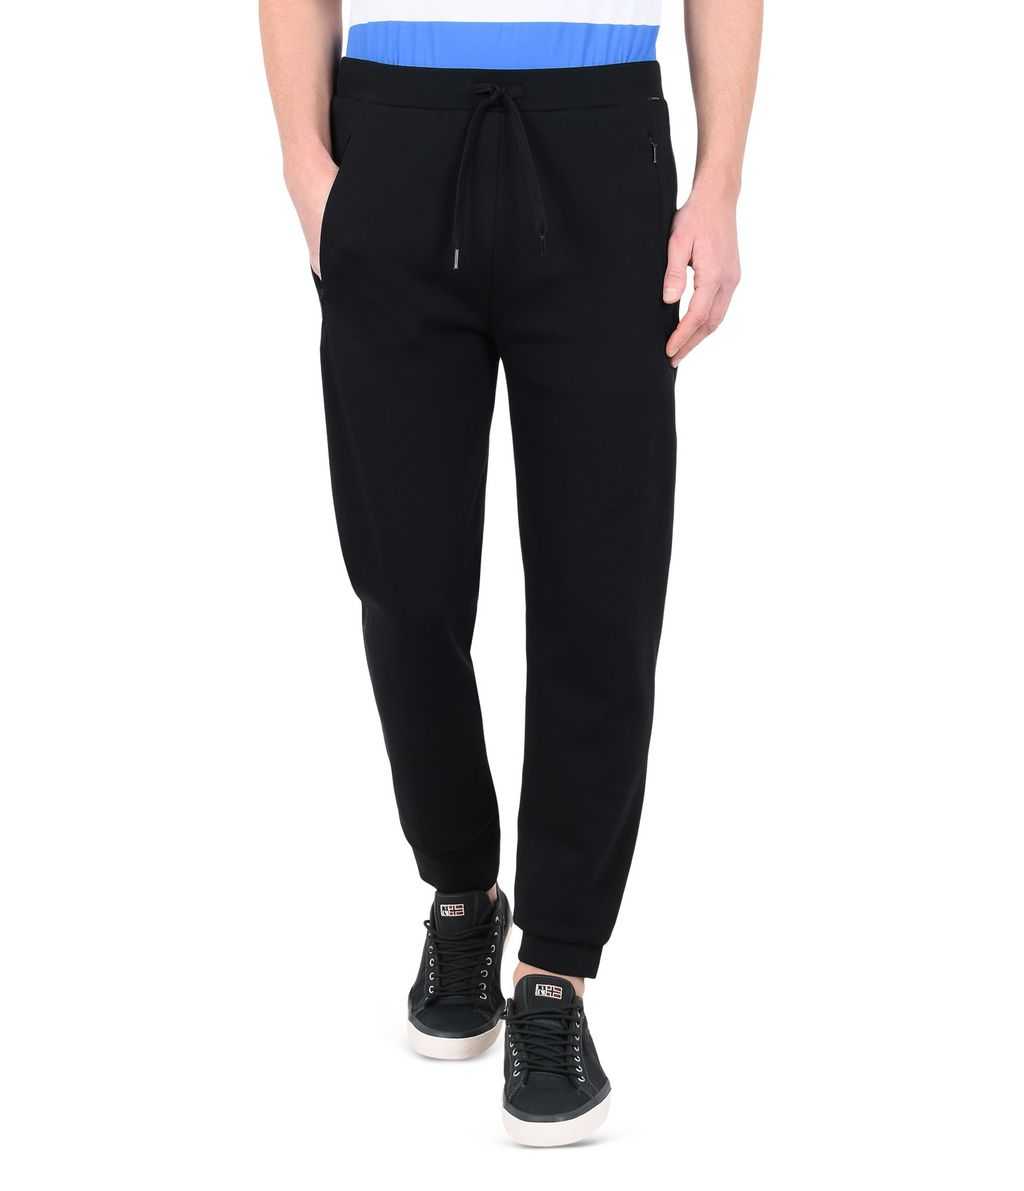 NAPAPIJRI MARAU MAN SWEATPANTS,BLACK